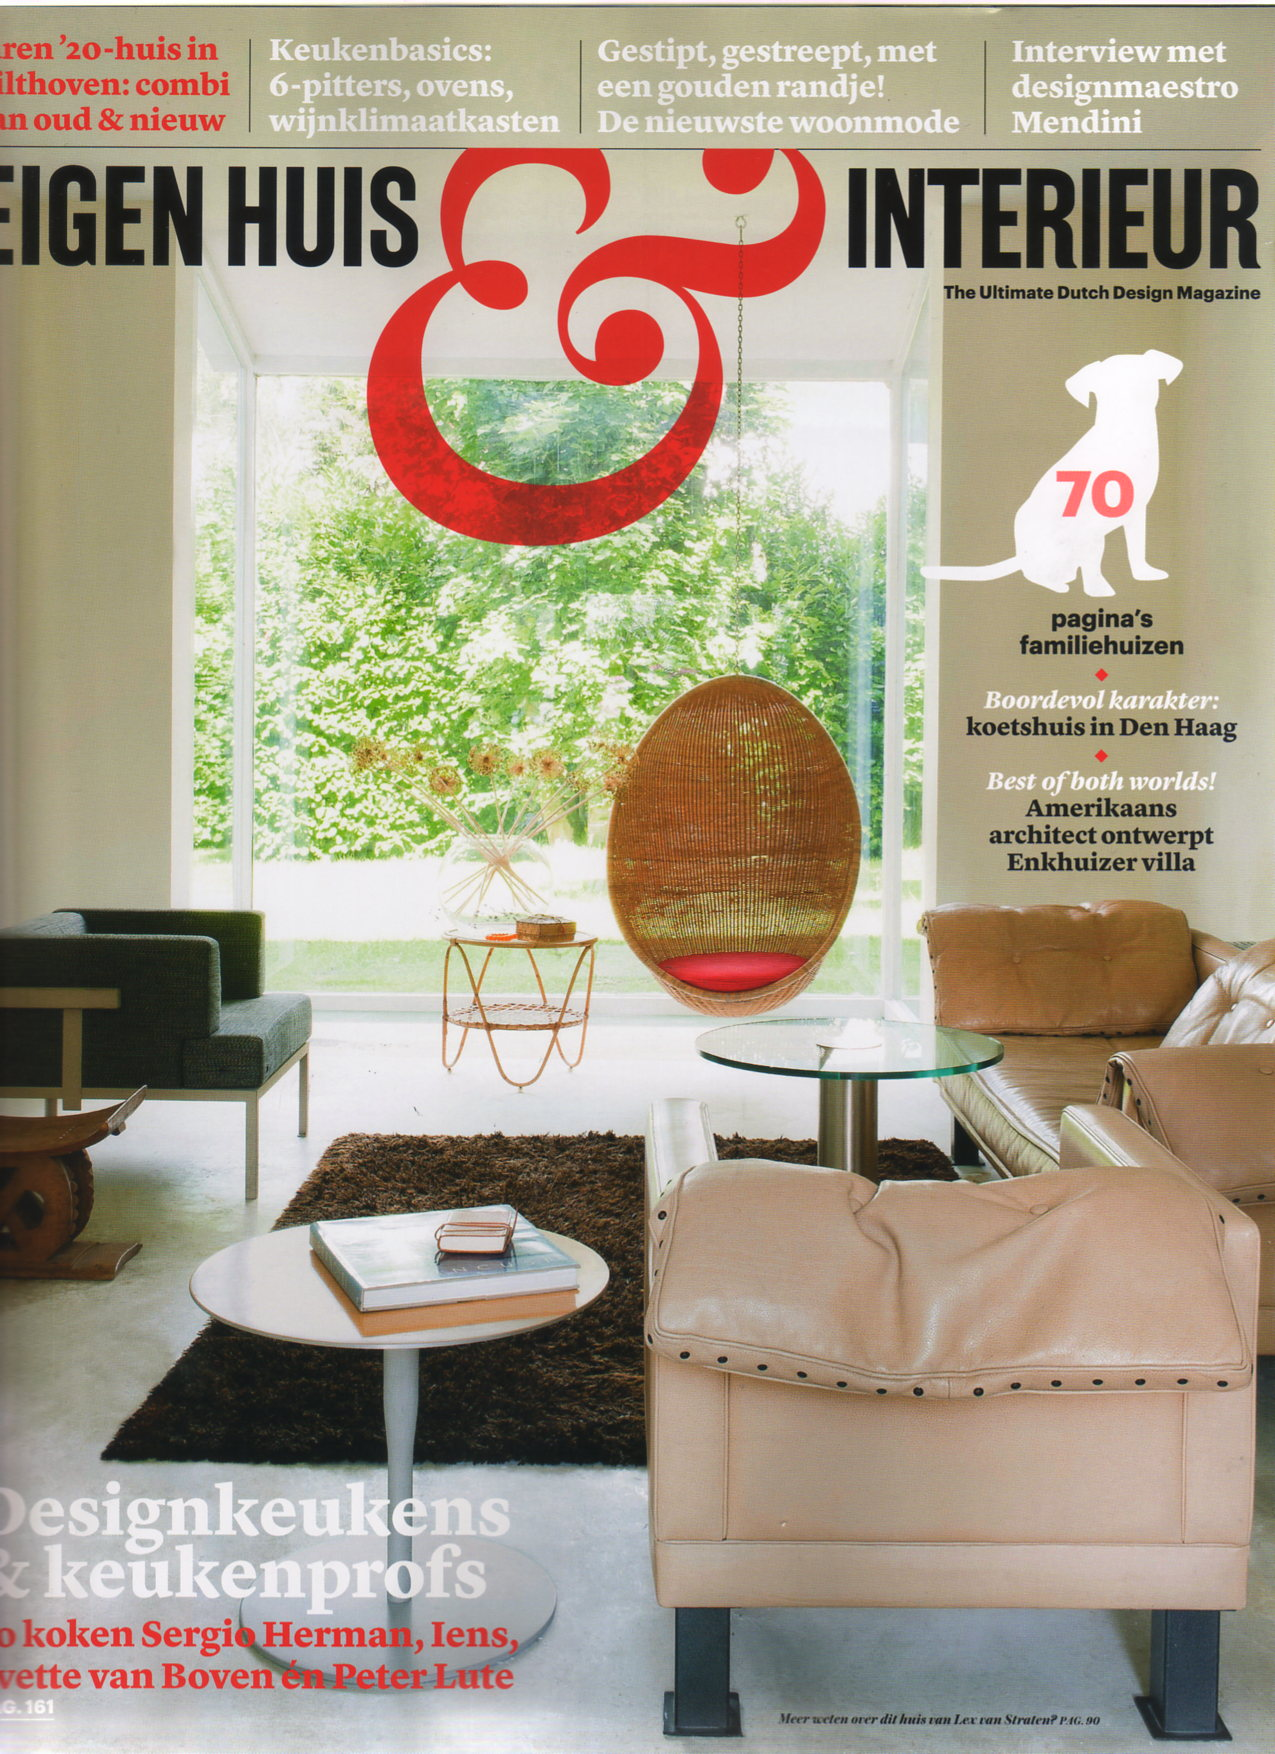 Eigen huis interieur features opposites attract melvin for Eigenhuis interieur